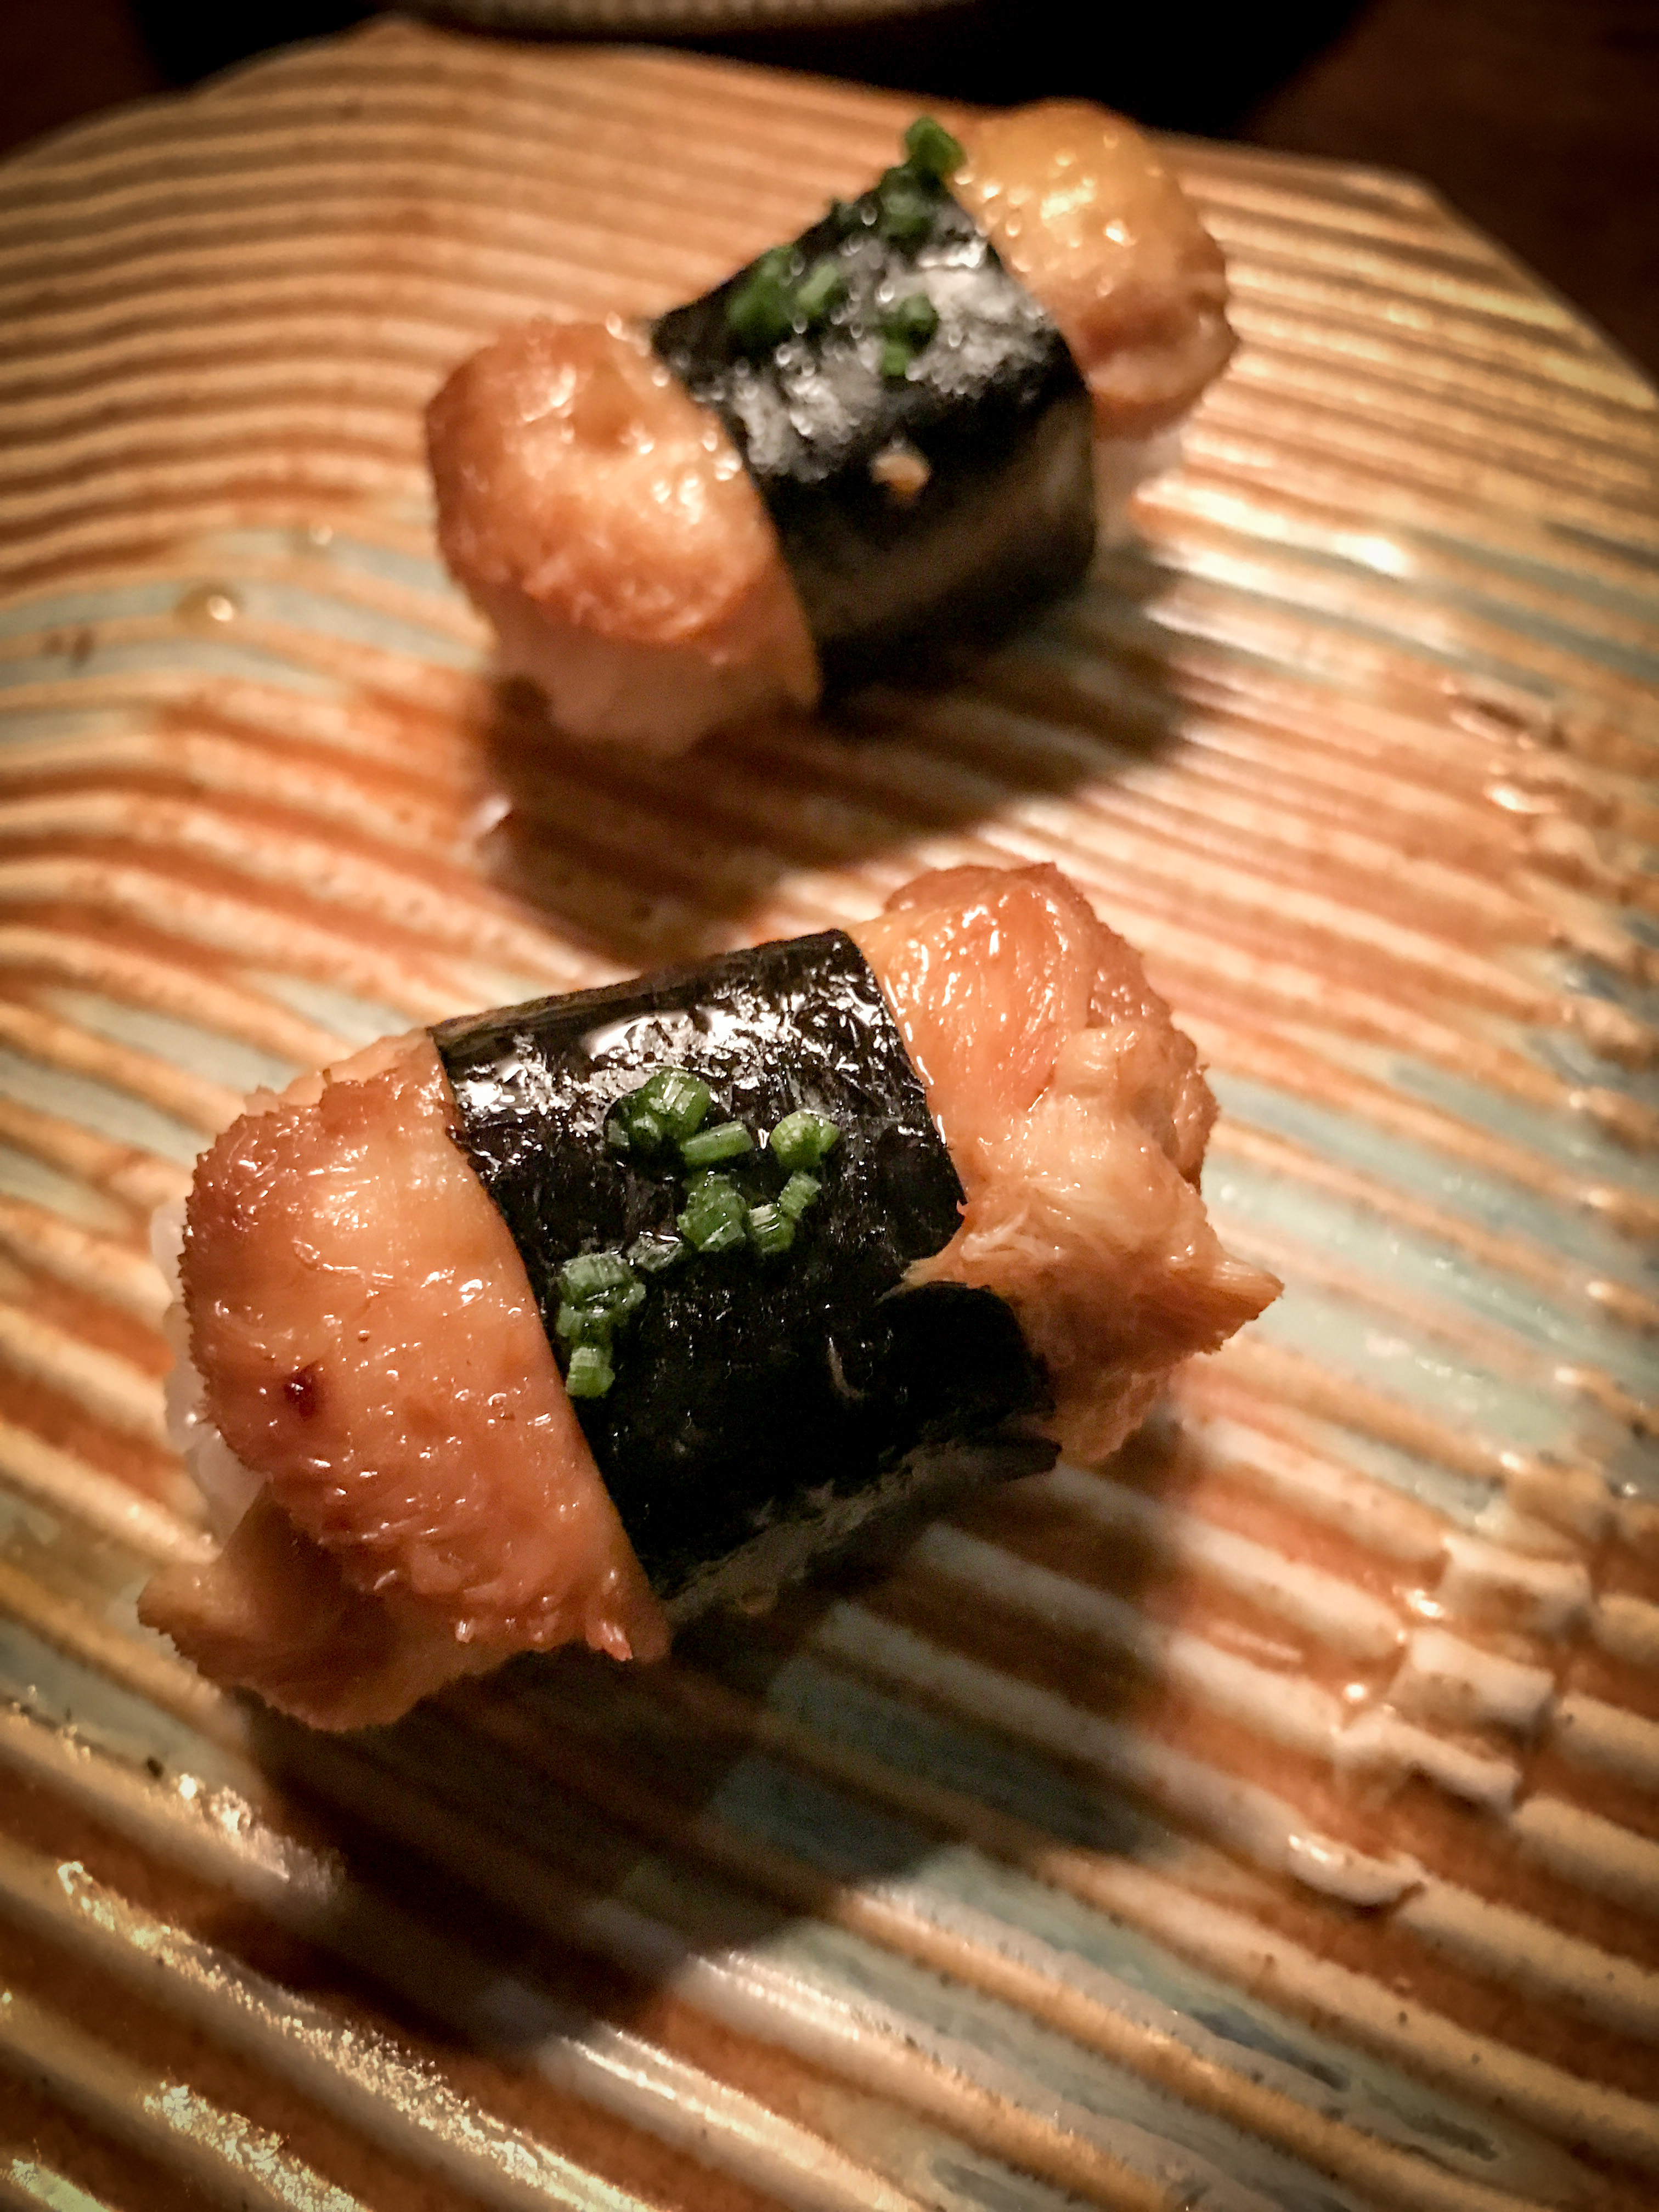 At the risk of repeating myself - if there is a mushroom nigiri on the menu JUST DO IT! I think these local lion's mane mushrooms with garlic and soy are pictured next to the word umami in the dictionary.